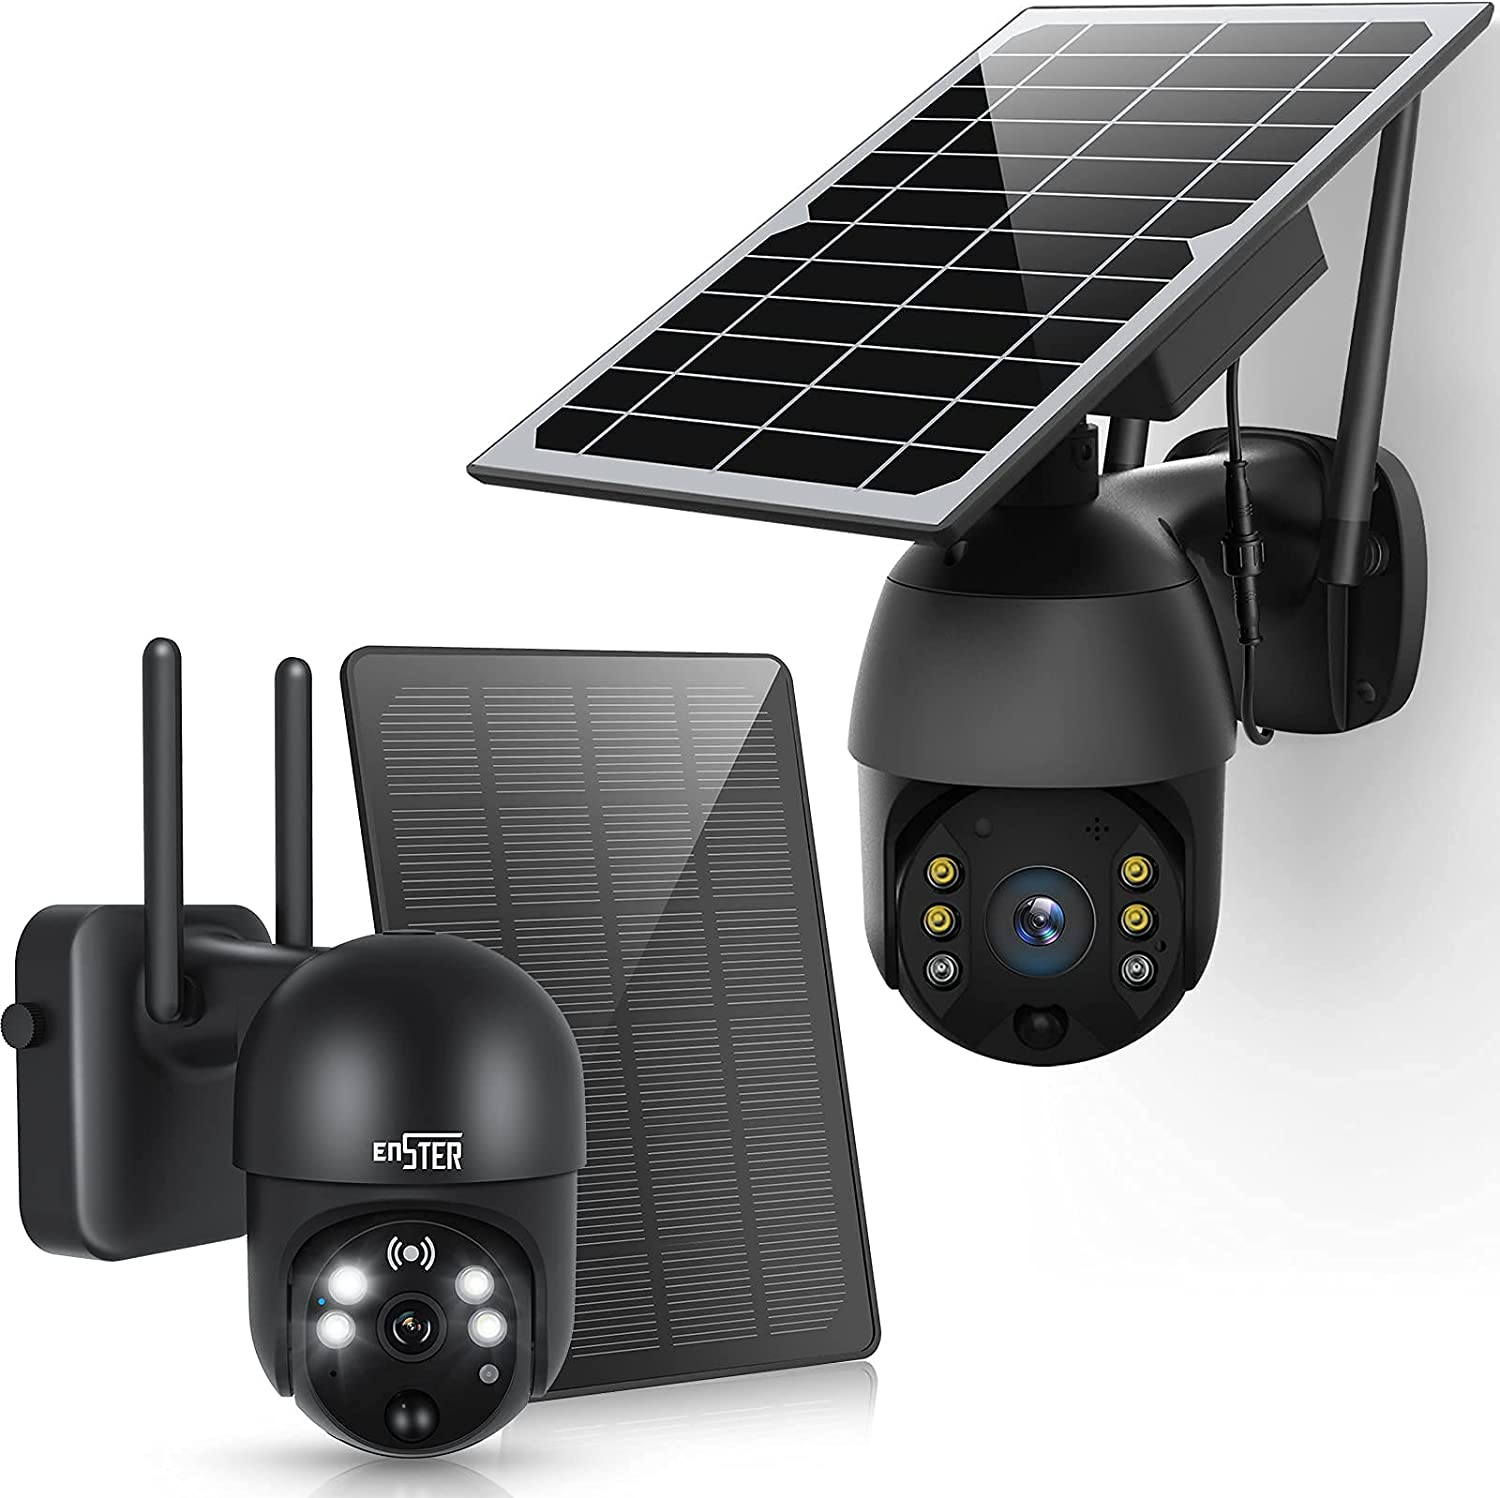 Solar Powered Wireless Security Camera Outdoor,ENSTER PTZ WiFi Home Smart Cam Waterproof with Spotlight,Battery,Solar Panel, Color Night Vision,Motion Detection,2-Way Audio,SD&Cloud Storage-Black